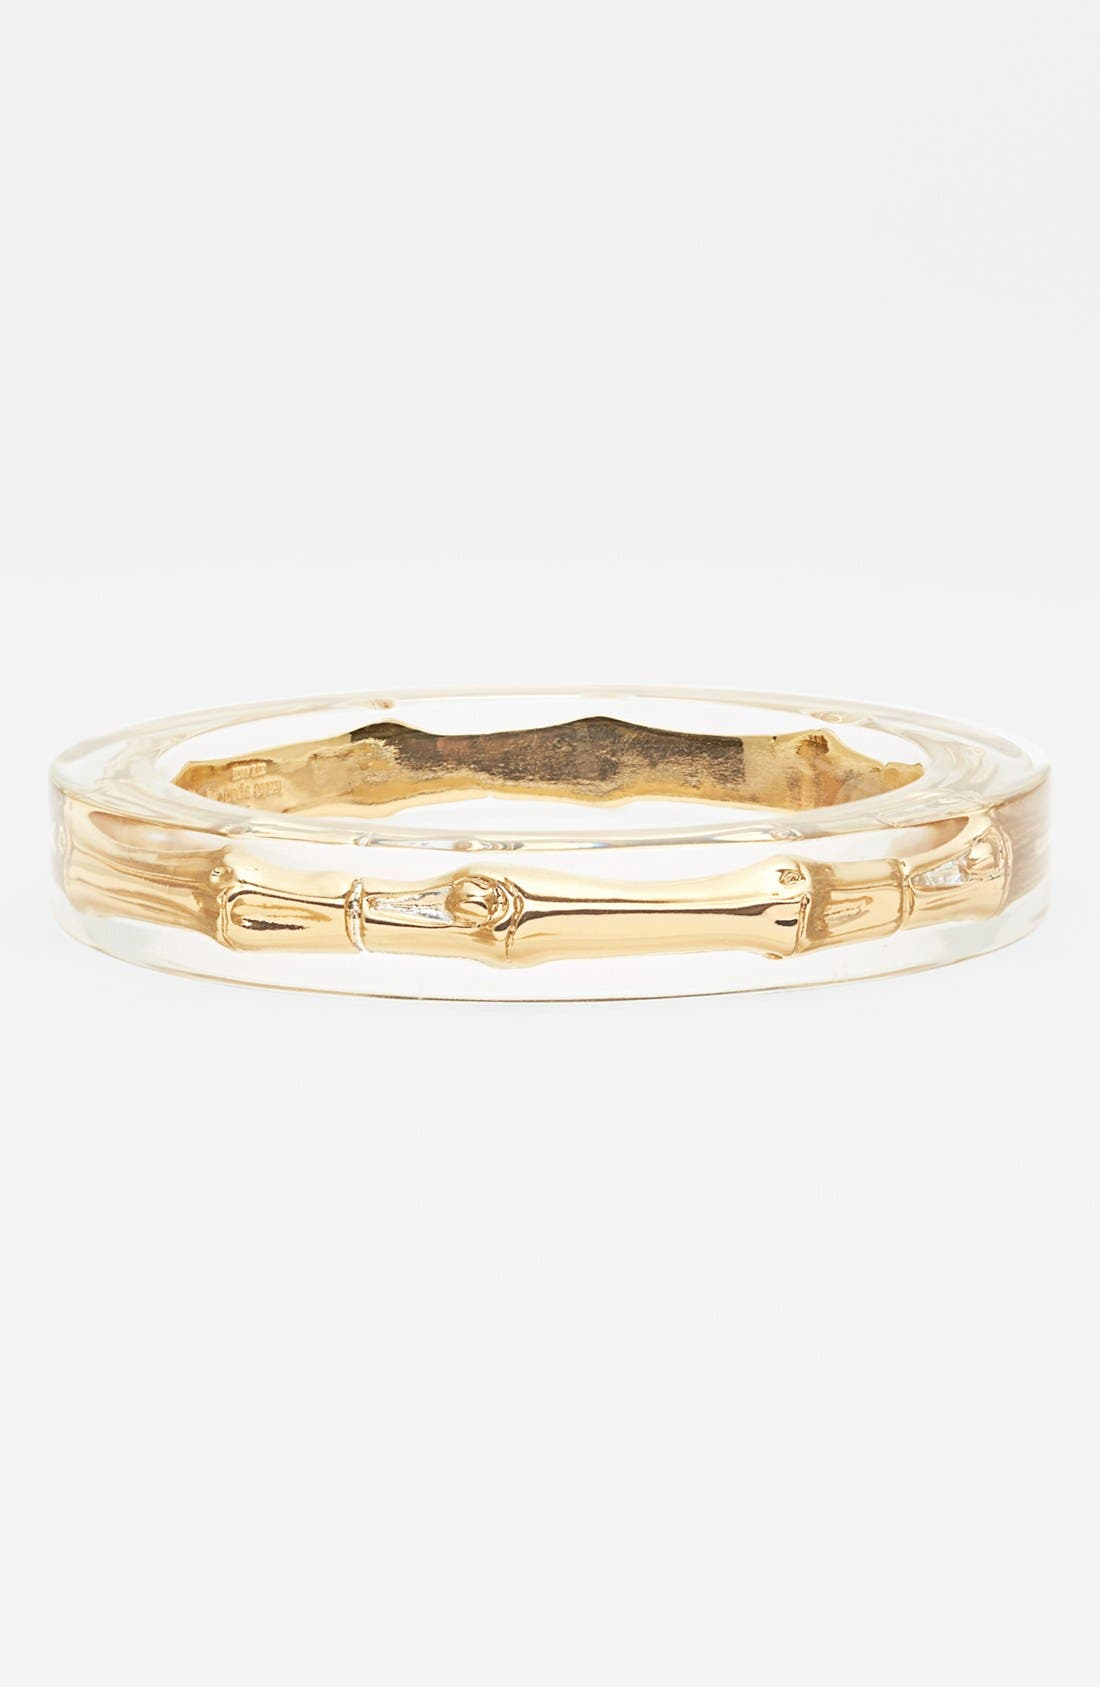 Main Image - kate spade new york 'bamboo park' bangle